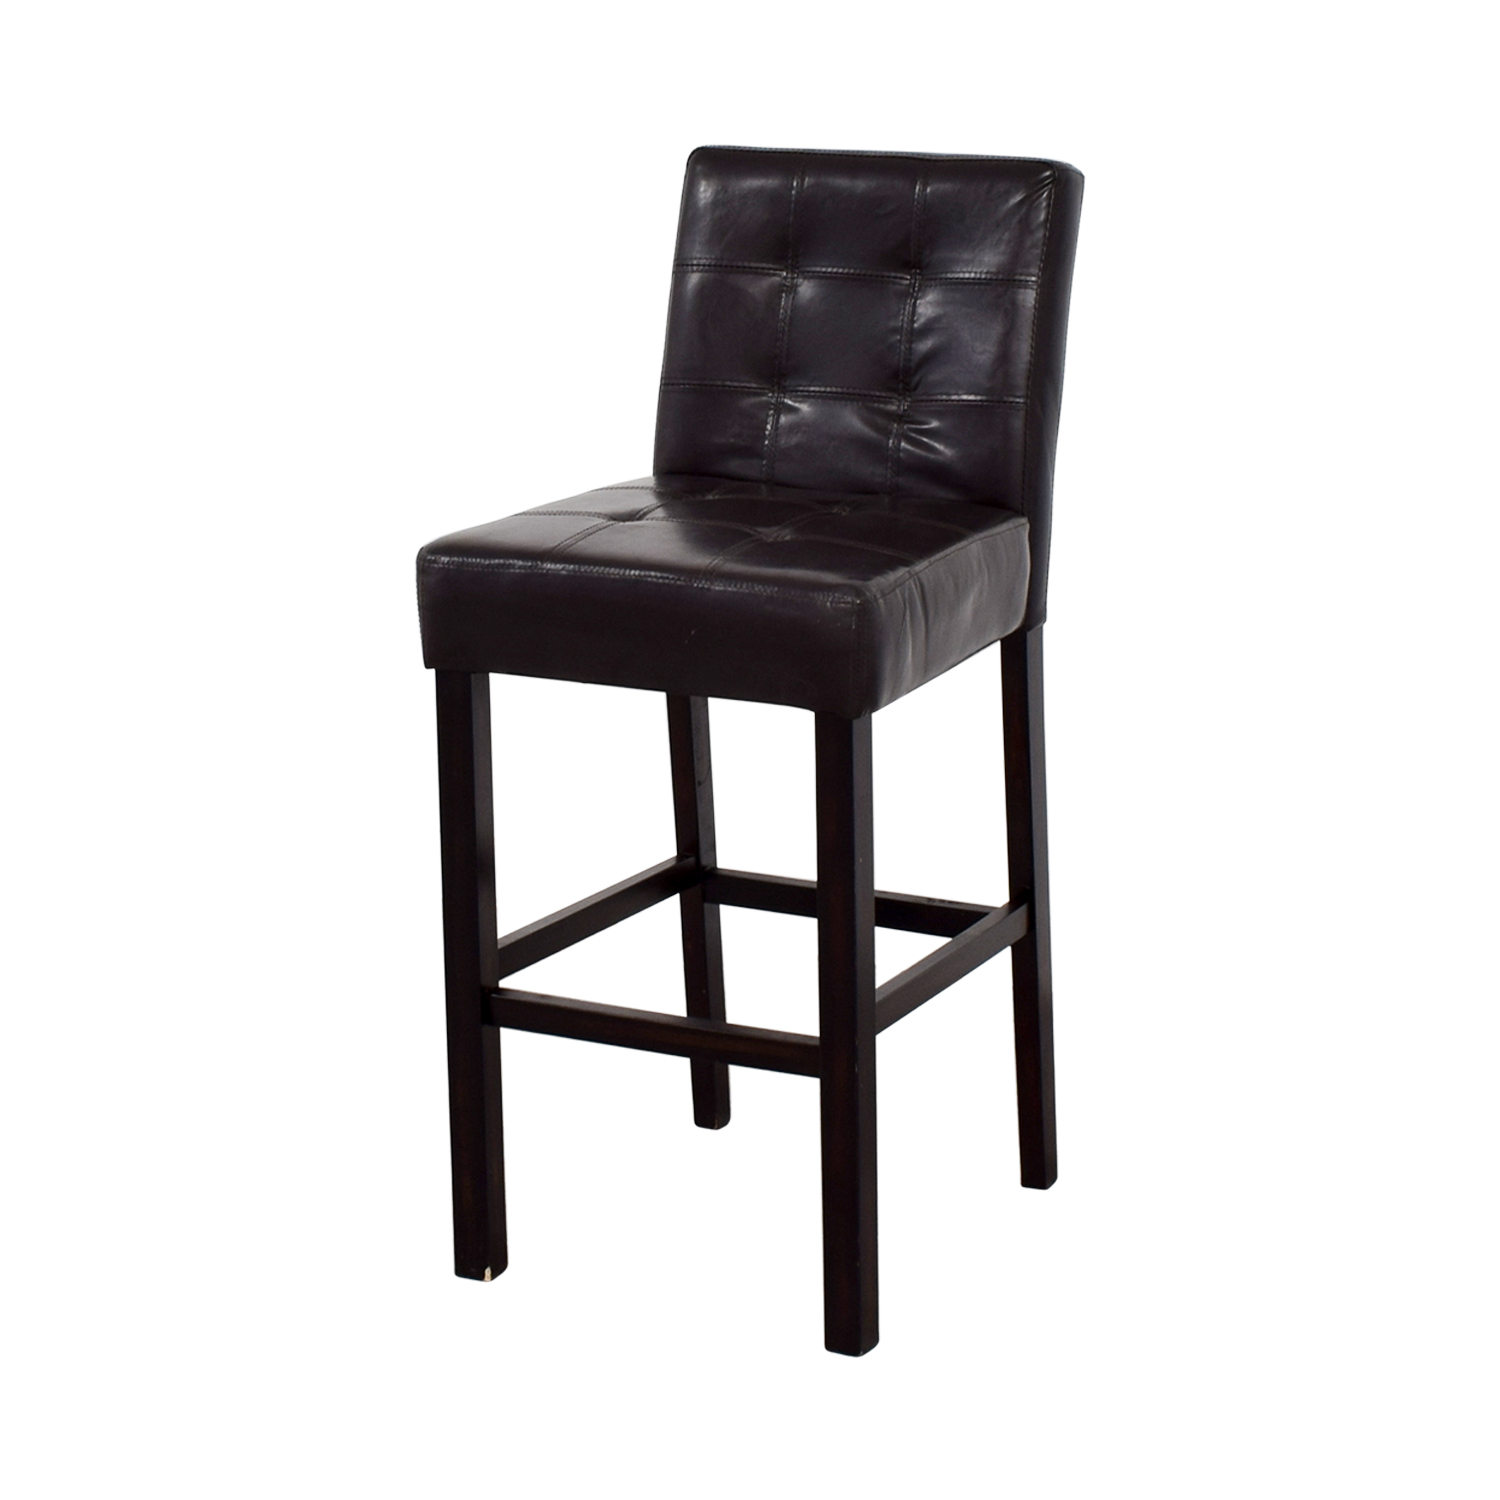 88 Off Tufted Bar Height Chair Chairs